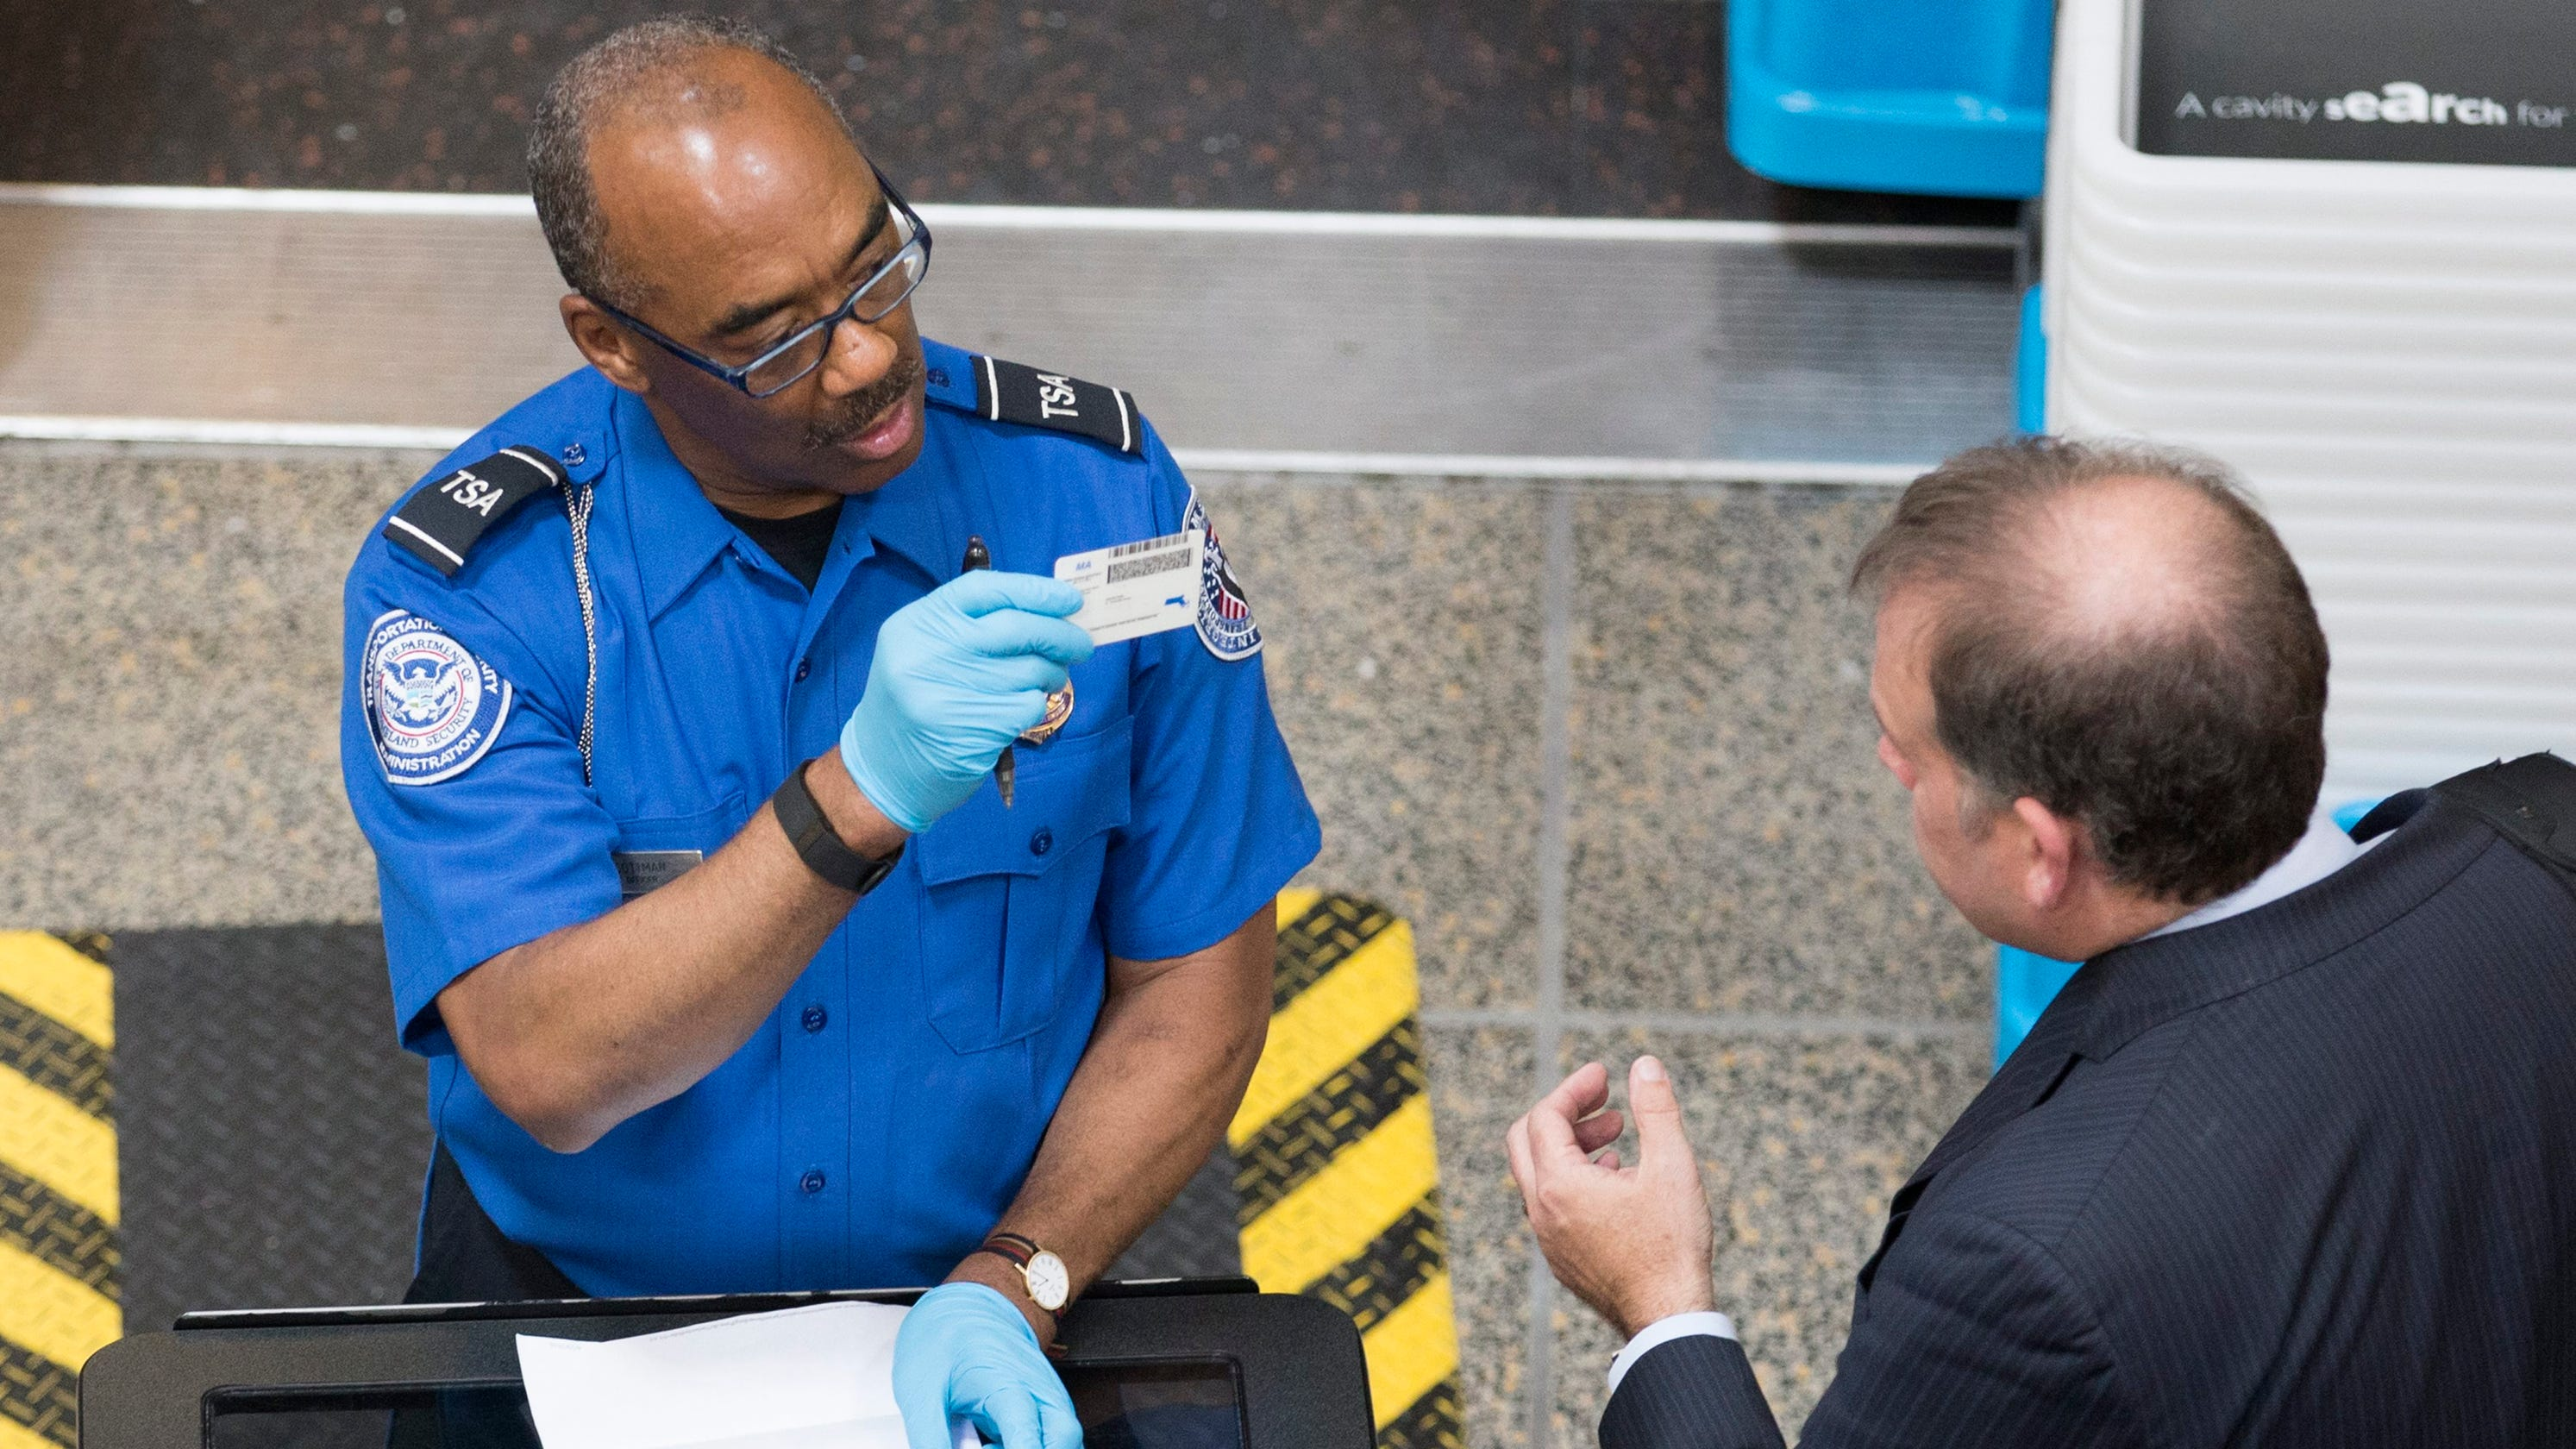 Real ID requirements: What travelers need to know